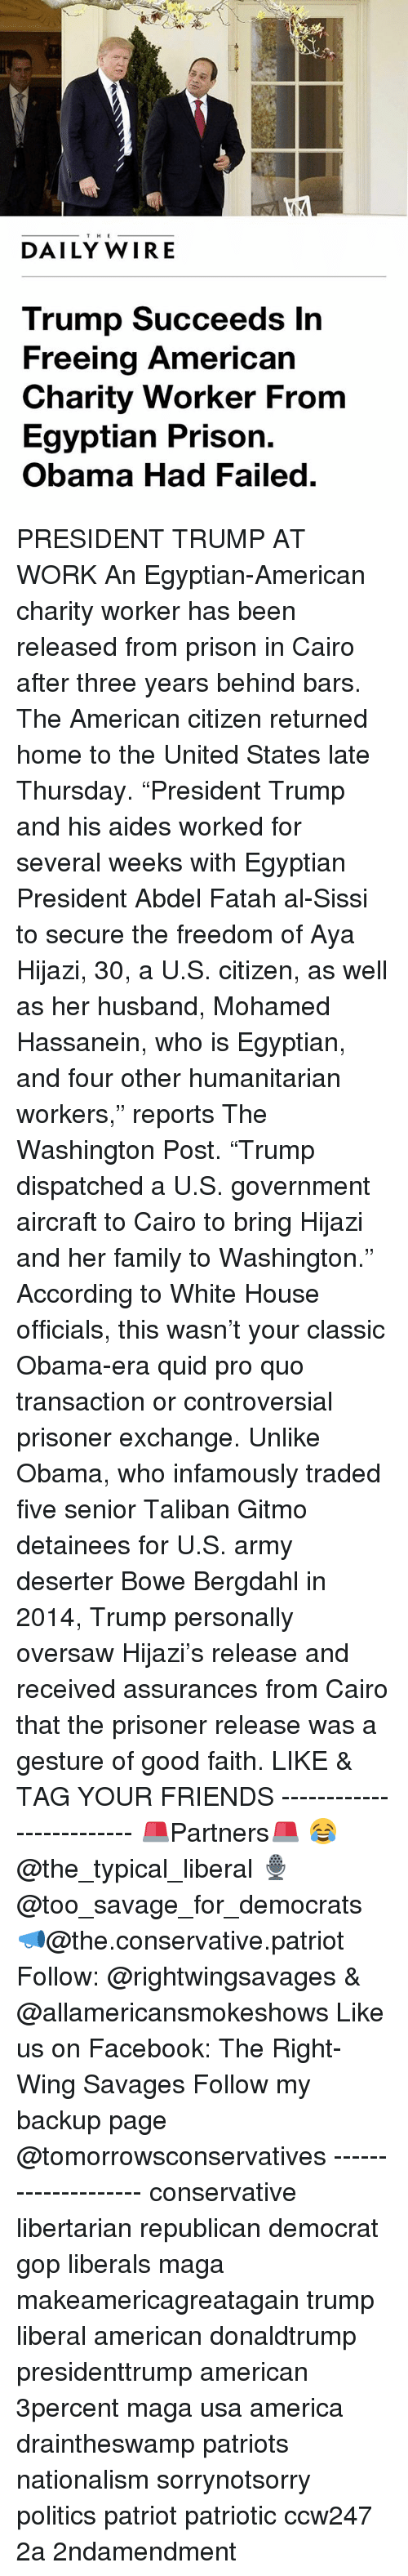 """taliban: THE  DAILY WIRE  Trump Succeeds In  Freeing American  Charity Worker From  Egyptian Prison.  Obama Had Failed PRESIDENT TRUMP AT WORK An Egyptian-American charity worker has been released from prison in Cairo after three years behind bars. The American citizen returned home to the United States late Thursday. """"President Trump and his aides worked for several weeks with Egyptian President Abdel Fatah al-Sissi to secure the freedom of Aya Hijazi, 30, a U.S. citizen, as well as her husband, Mohamed Hassanein, who is Egyptian, and four other humanitarian workers,"""" reports The Washington Post. """"Trump dispatched a U.S. government aircraft to Cairo to bring Hijazi and her family to Washington."""" According to White House officials, this wasn't your classic Obama-era quid pro quo transaction or controversial prisoner exchange. Unlike Obama, who infamously traded five senior Taliban Gitmo detainees for U.S. army deserter Bowe Bergdahl in 2014, Trump personally oversaw Hijazi's release and received assurances from Cairo that the prisoner release was a gesture of good faith. LIKE & TAG YOUR FRIENDS ------------------------- 🚨Partners🚨 😂@the_typical_liberal 🎙@too_savage_for_democrats 📣@the.conservative.patriot Follow: @rightwingsavages & @allamericansmokeshows Like us on Facebook: The Right-Wing Savages Follow my backup page @tomorrowsconservatives -------------------- conservative libertarian republican democrat gop liberals maga makeamericagreatagain trump liberal american donaldtrump presidenttrump american 3percent maga usa america draintheswamp patriots nationalism sorrynotsorry politics patriot patriotic ccw247 2a 2ndamendment"""